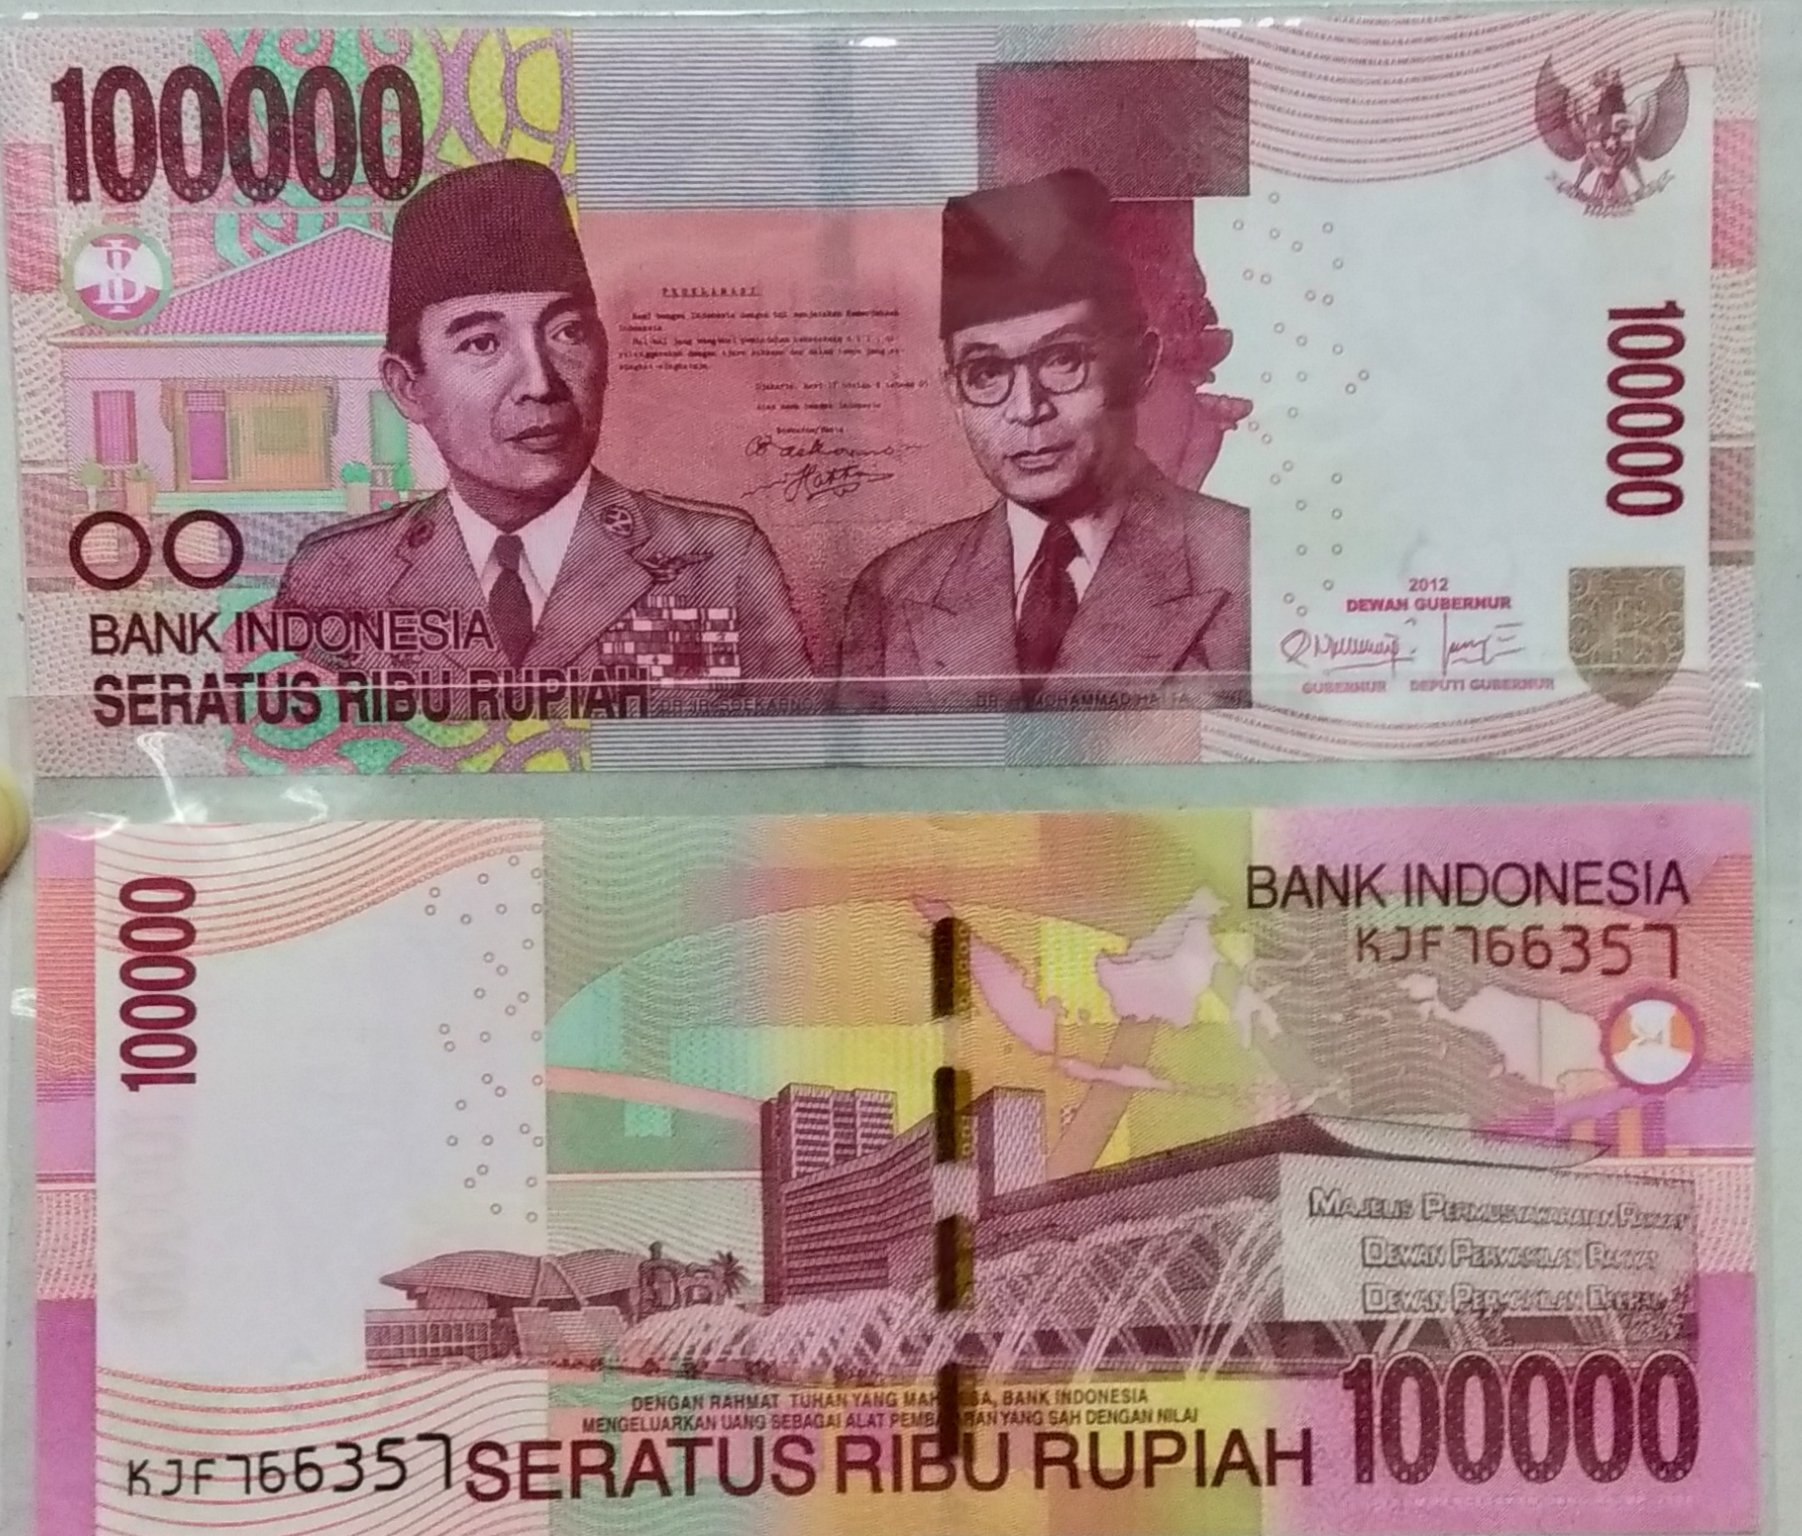 Indonesia 10000 rupiah banknote for sale